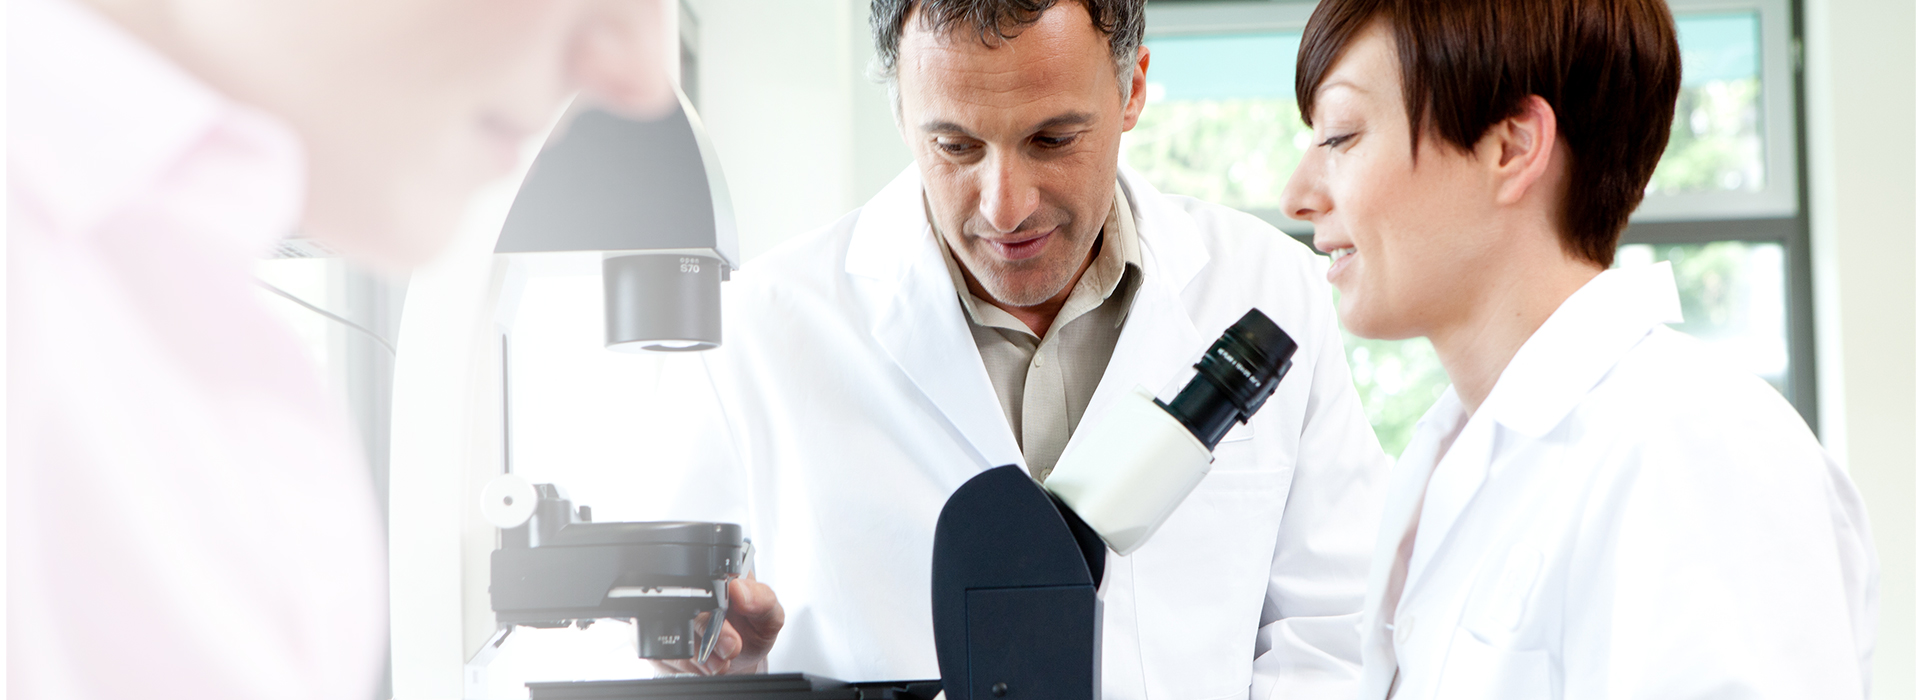 Photograph of Leica Microsystems associates in lab